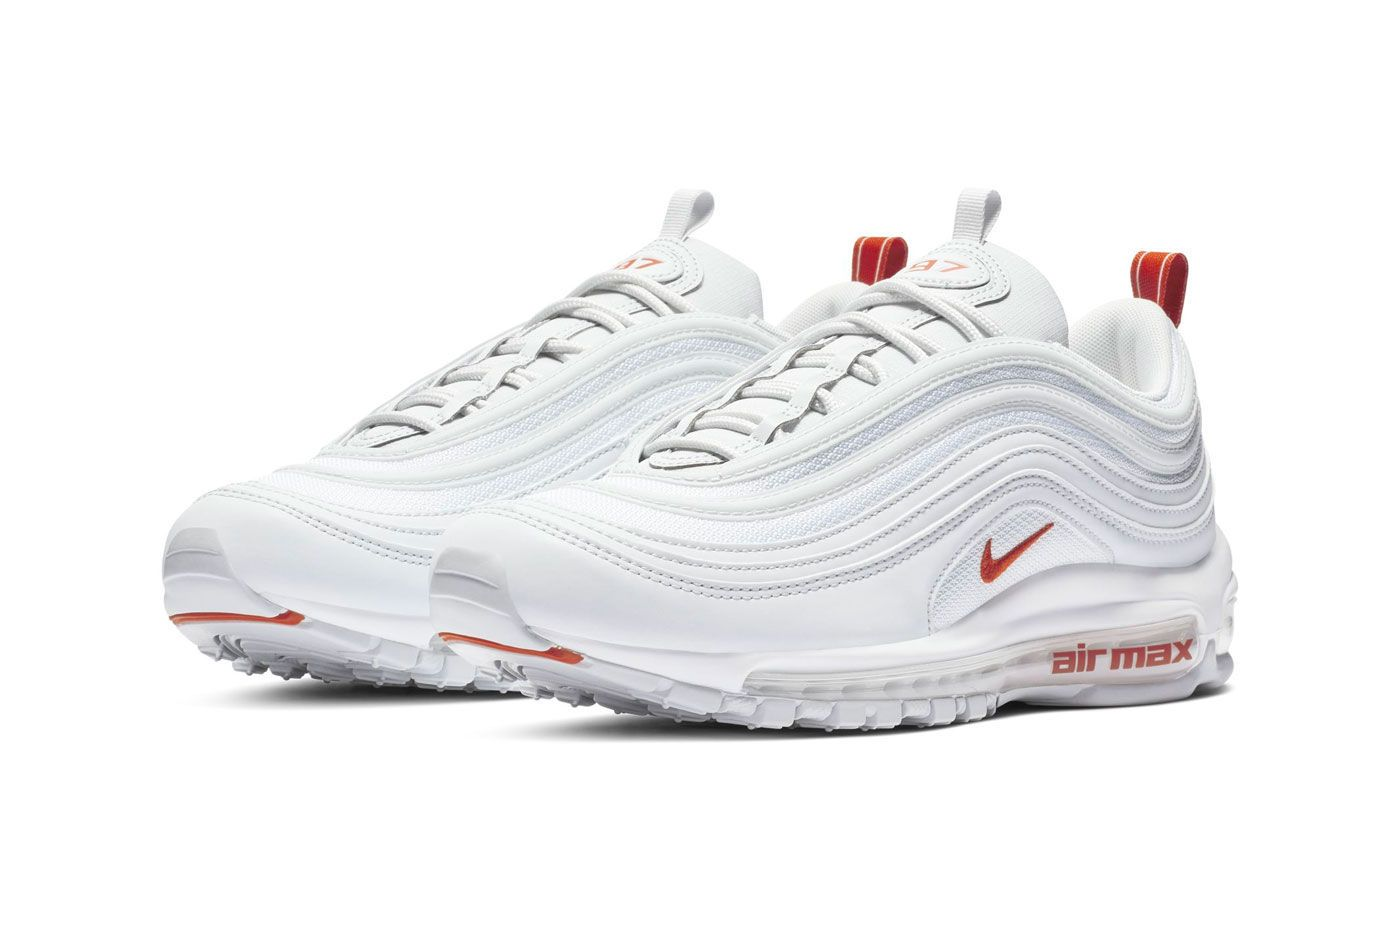 f4b0b06a329ca Nike Air Max 97 Team Orange Release Date sneaker shoes Pure Platinum White